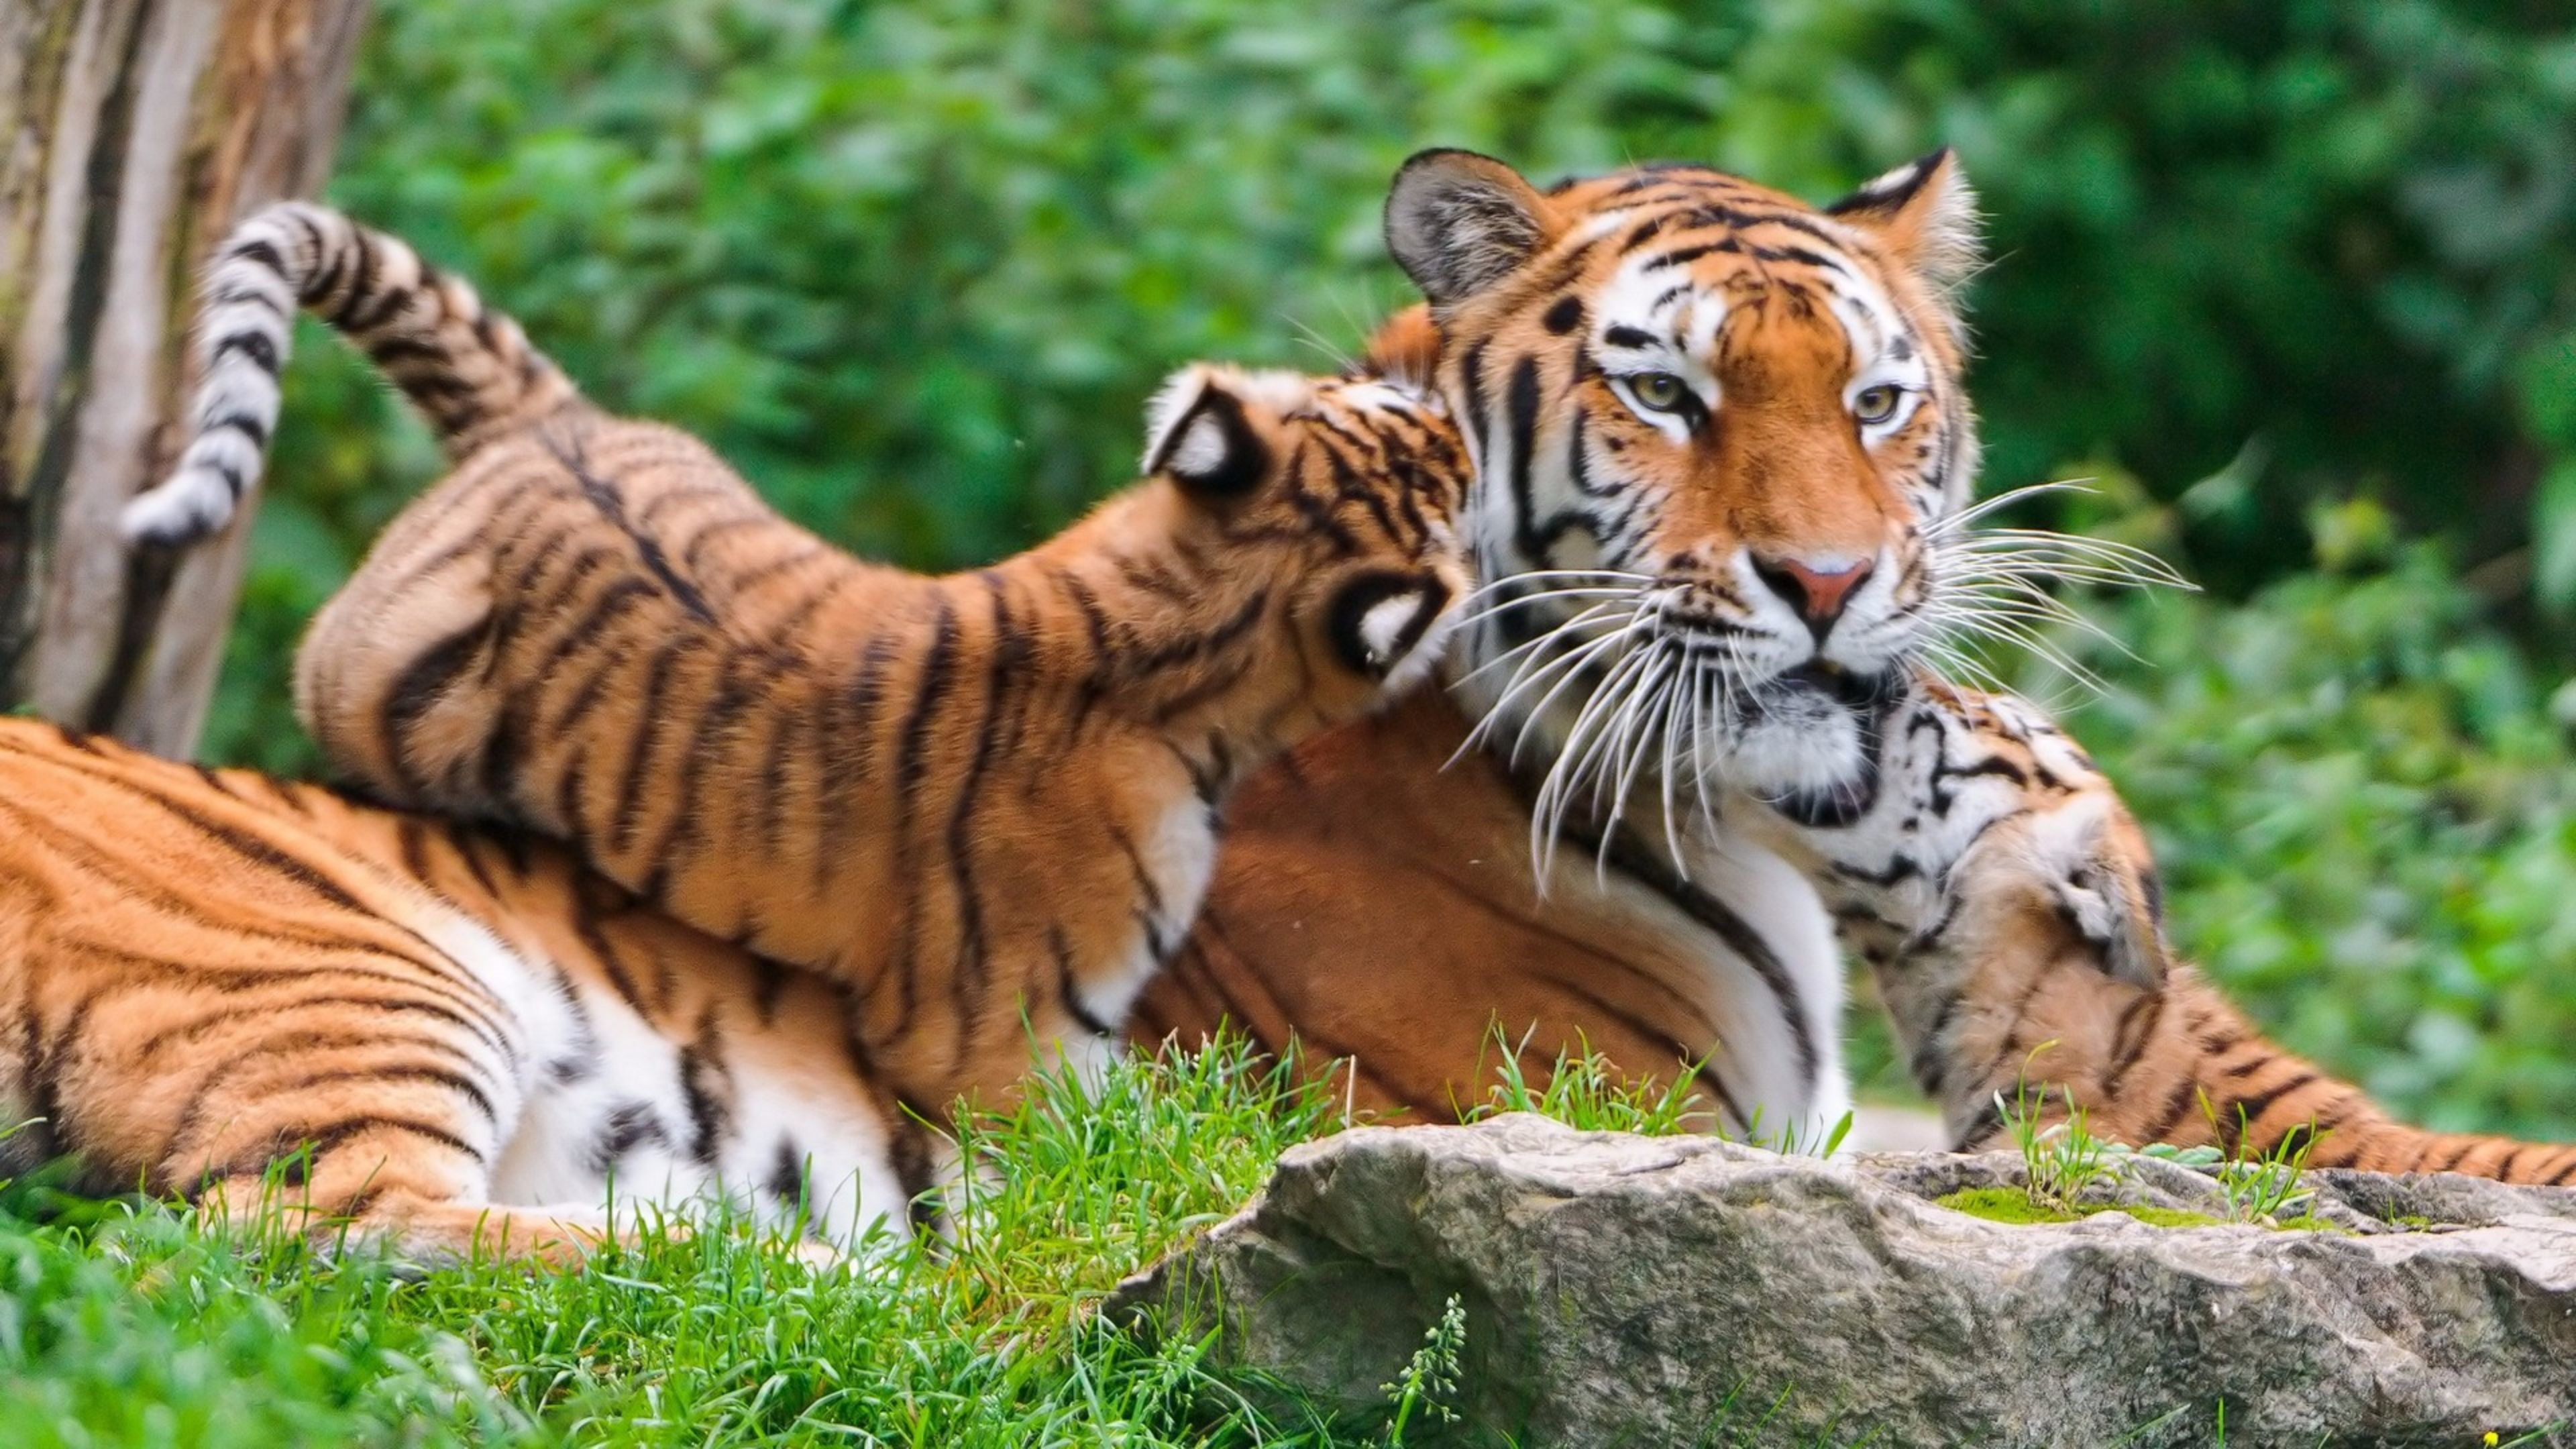 tiger cubby Cats Animals Background Wallpapers on Desktop